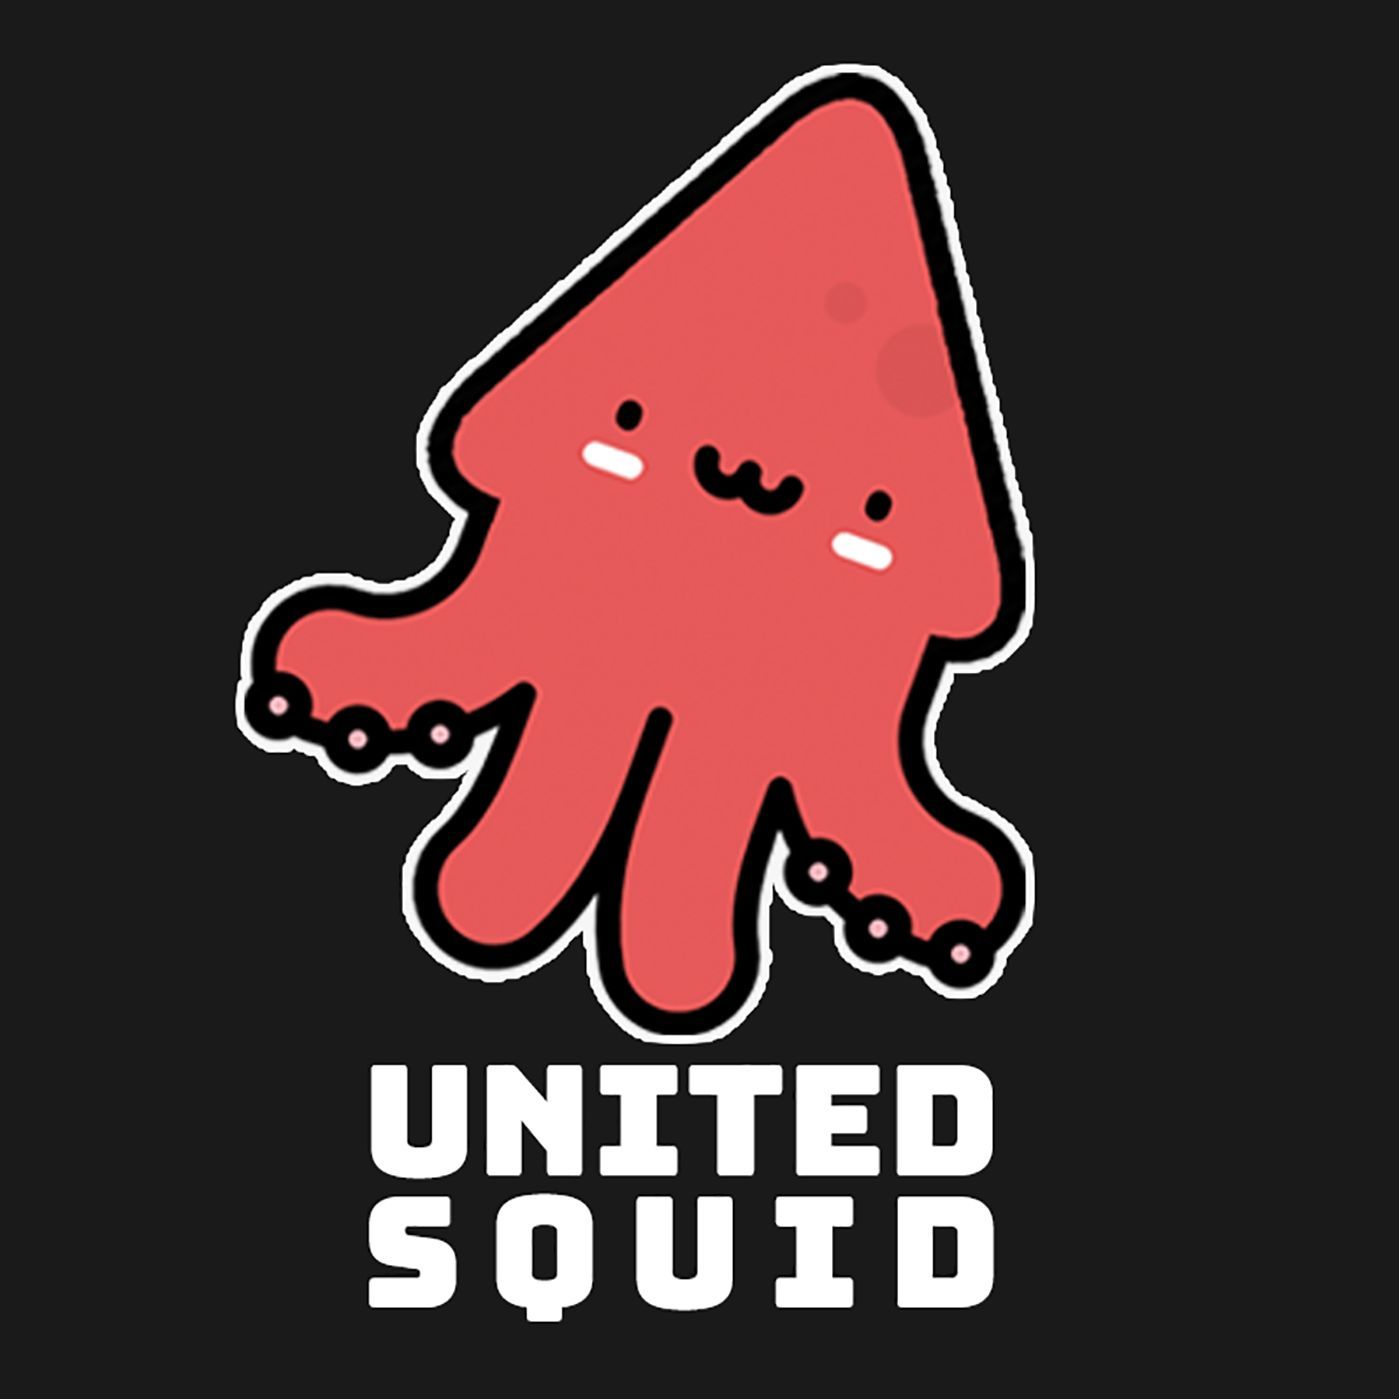 United Squid Podcast #1 - Space Toilets And Other Troublesome Topics